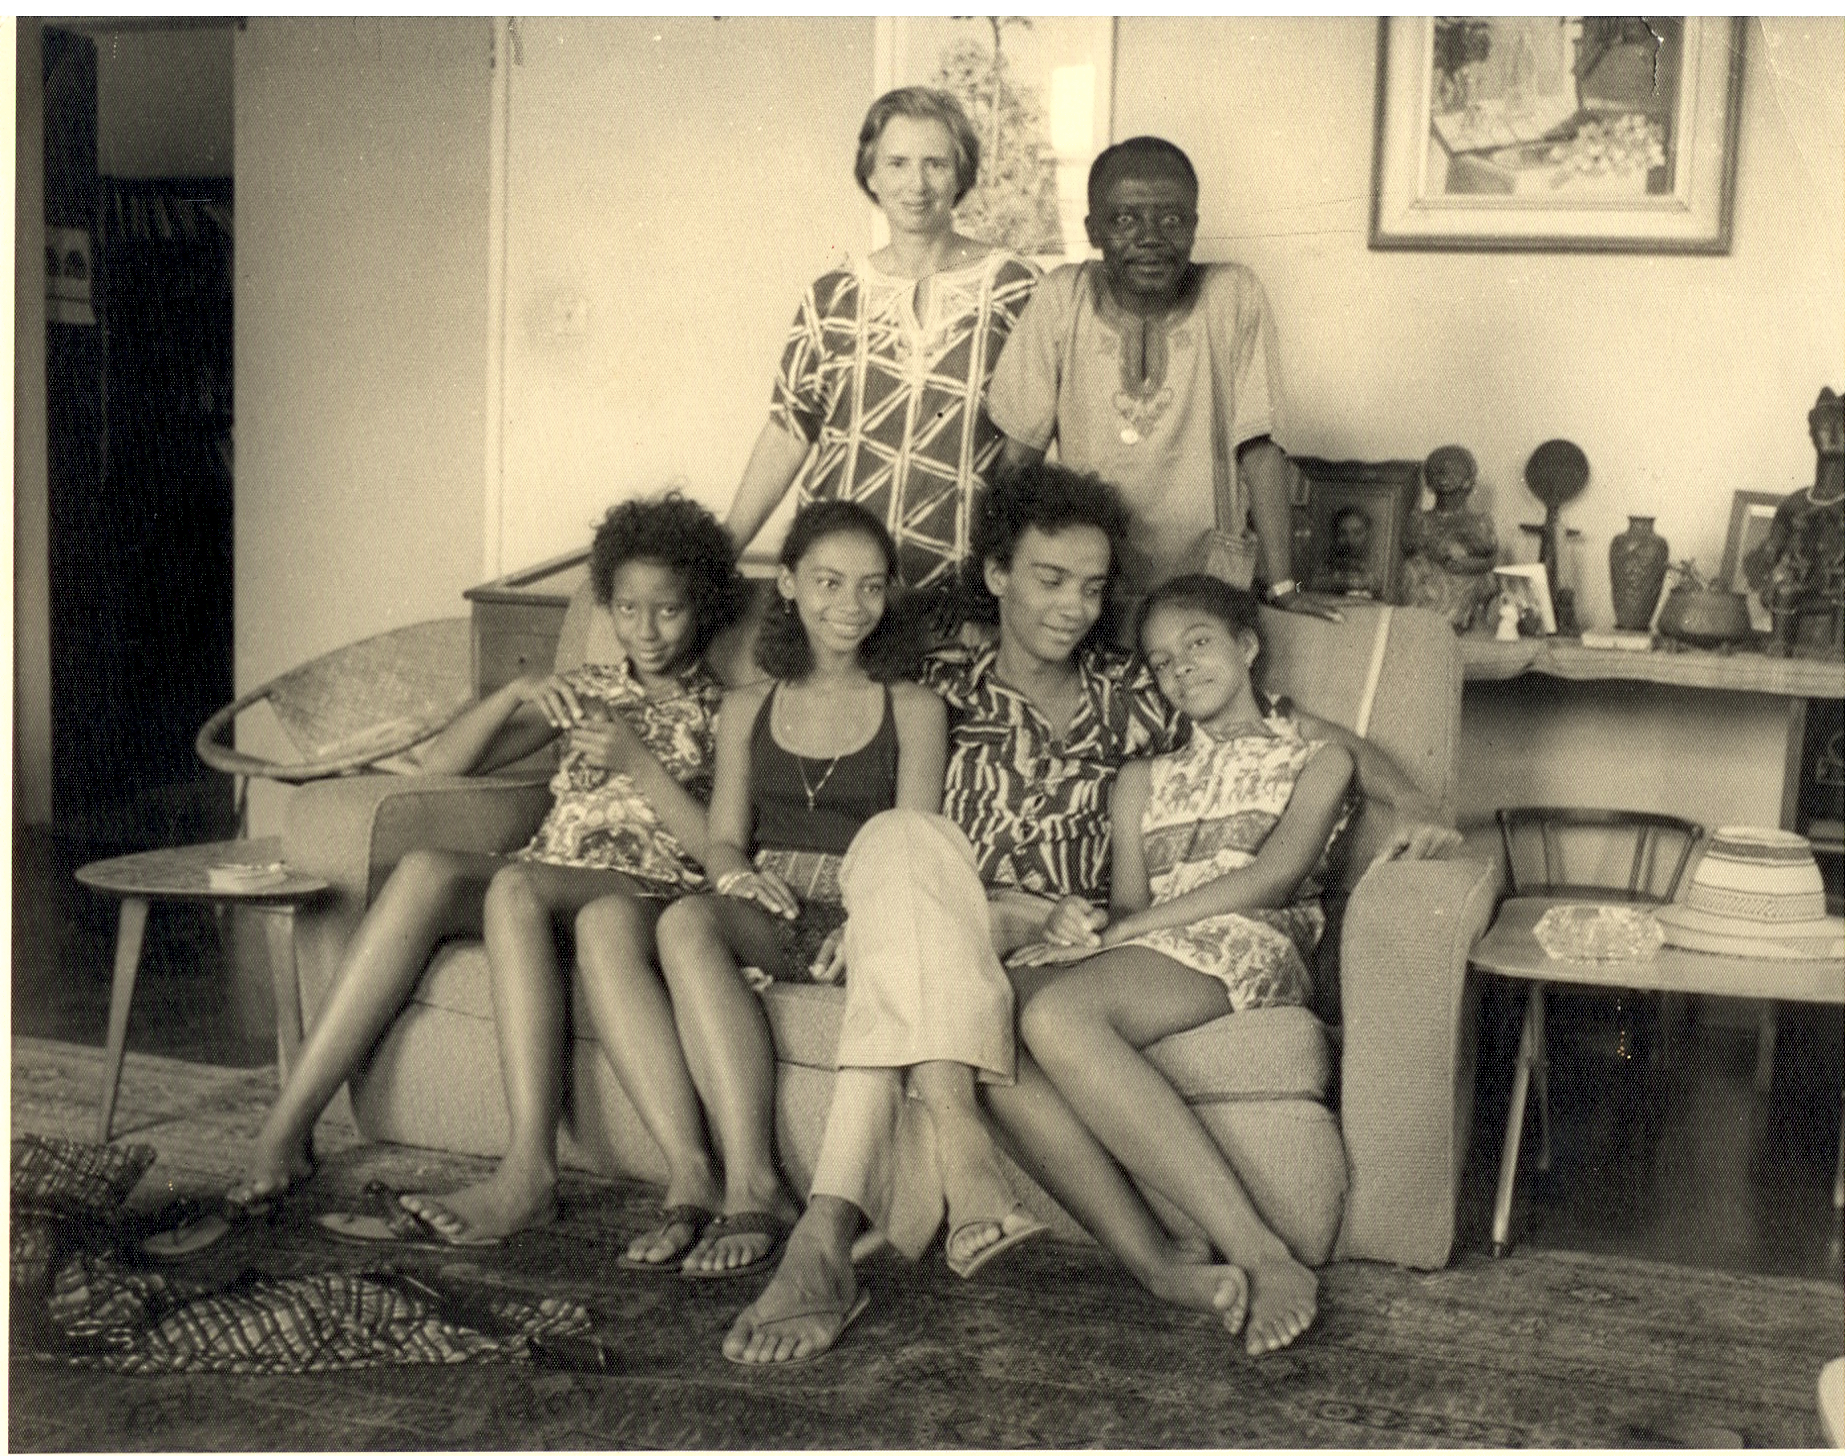 How the marriage between Joe Appiah and Peggy Cripps stirred the world in 1953